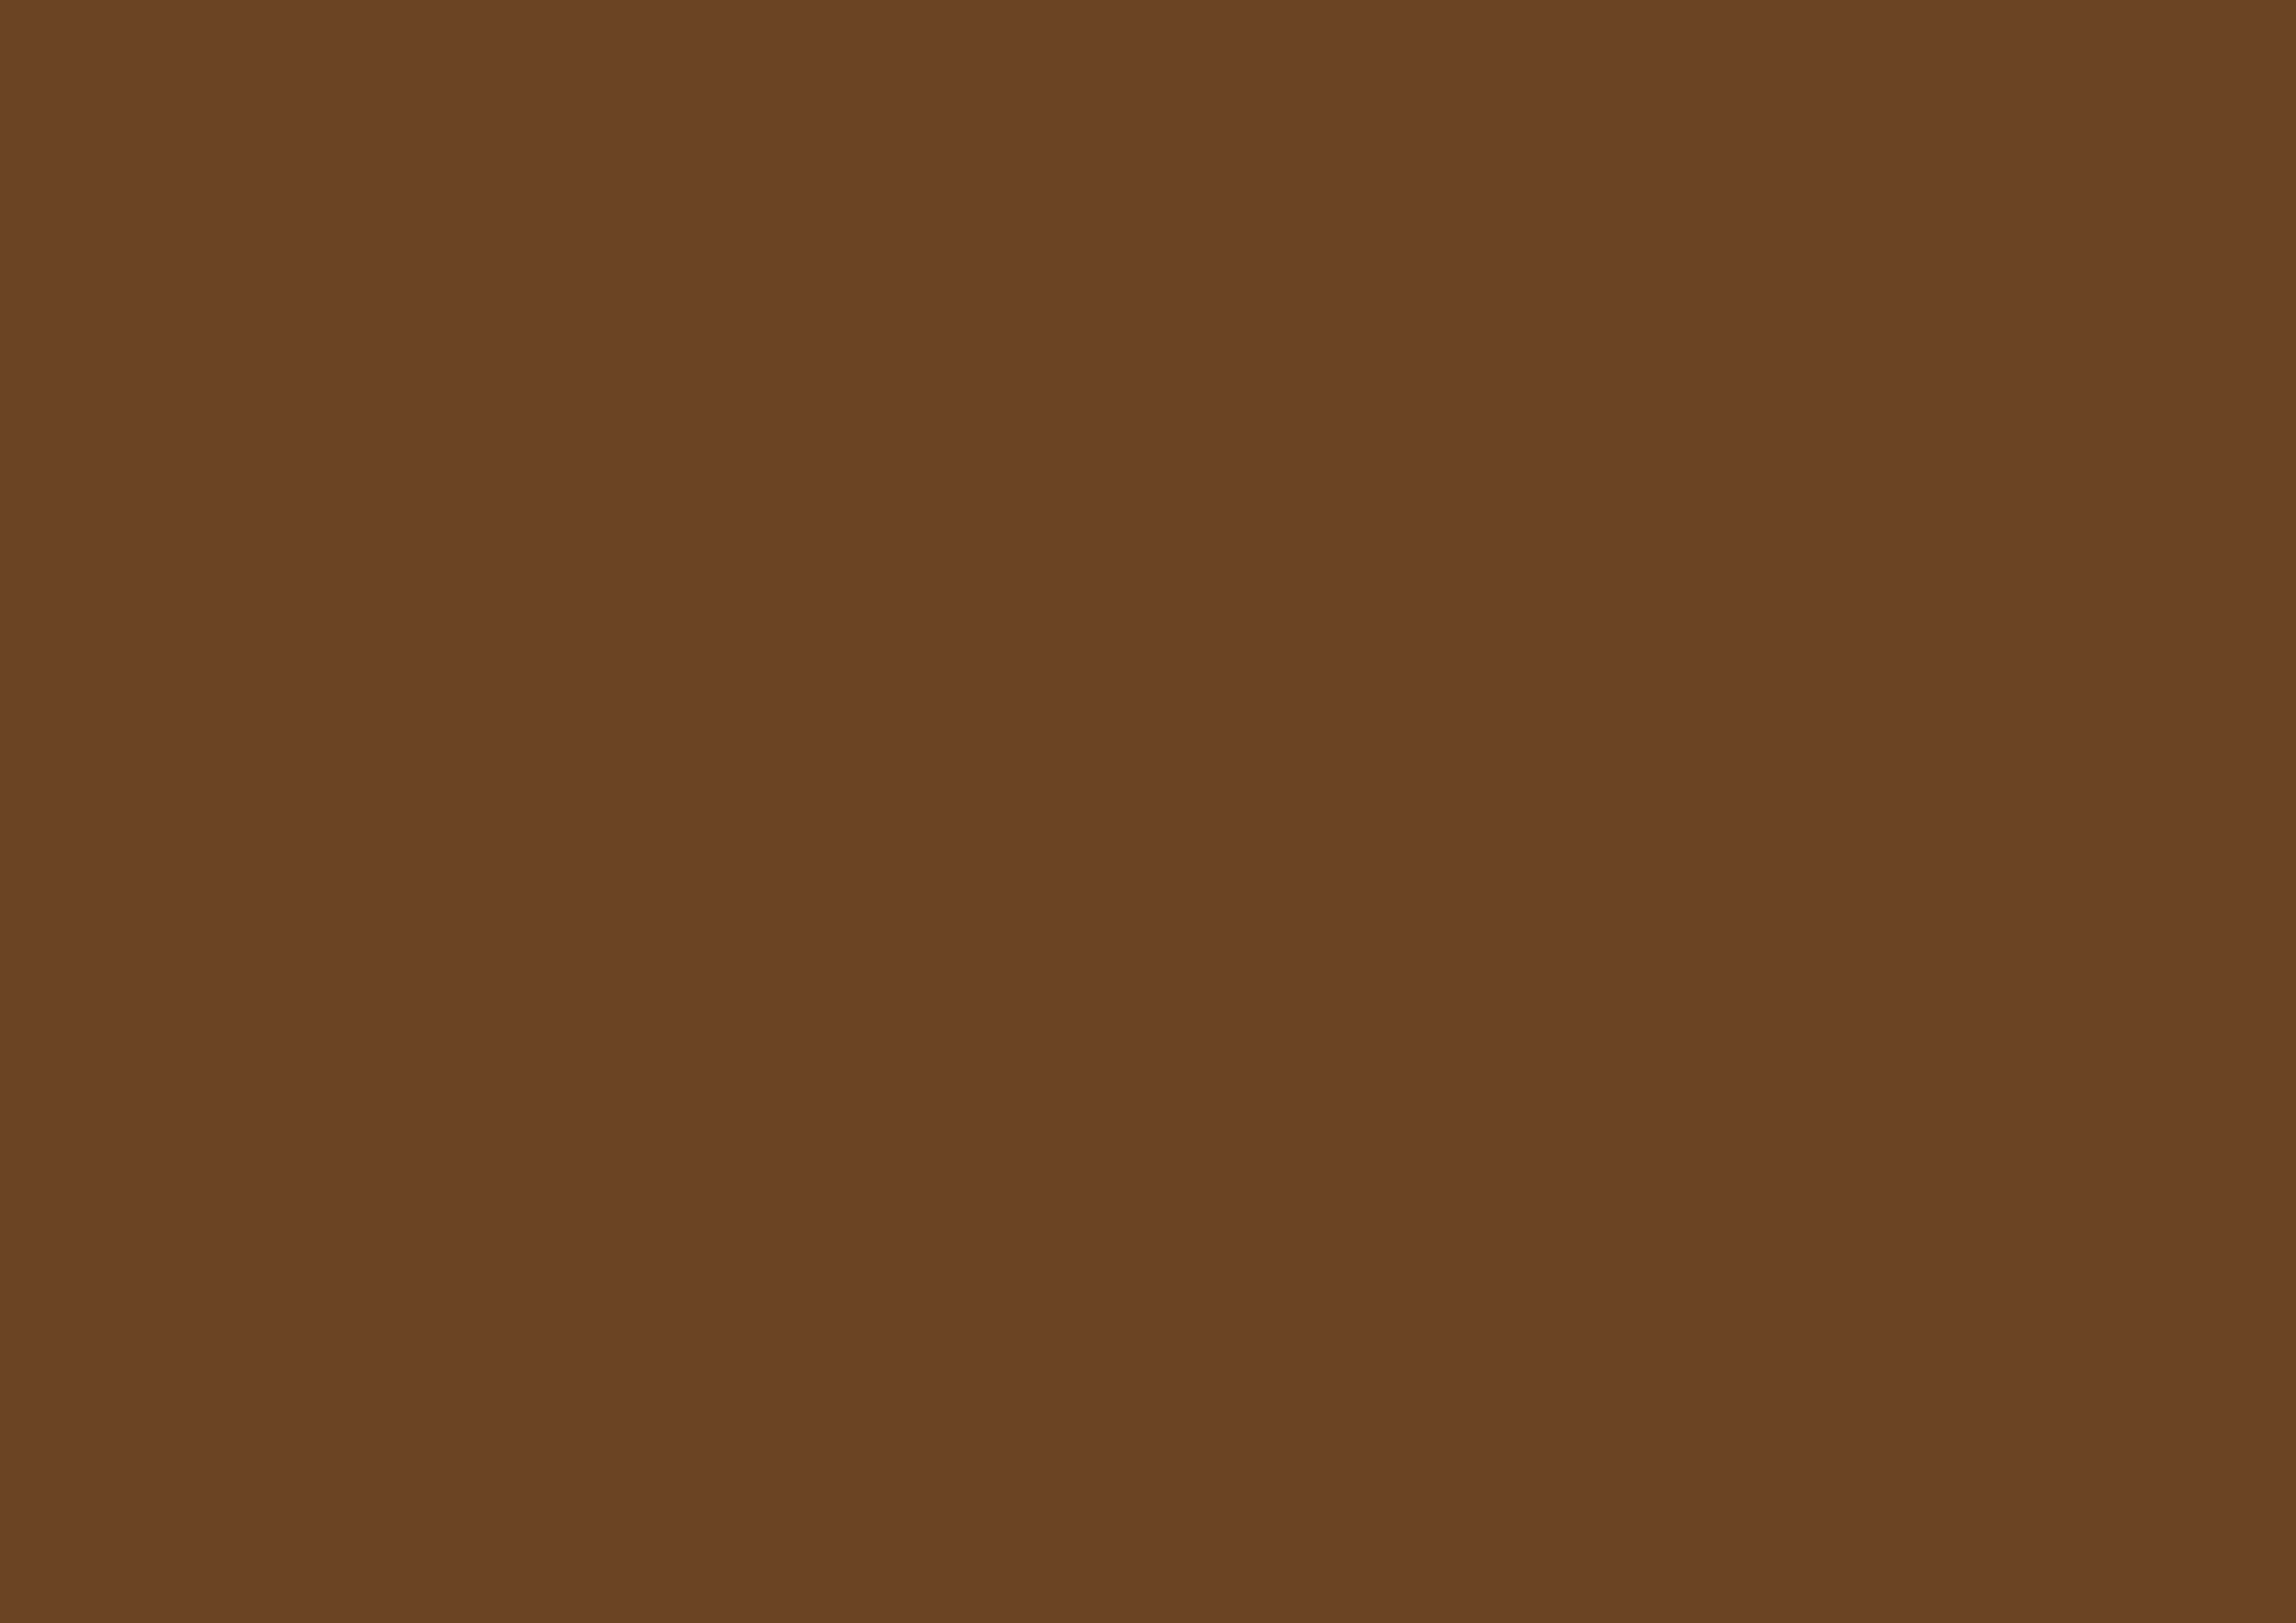 3508x2480 Flattery Solid Color Background